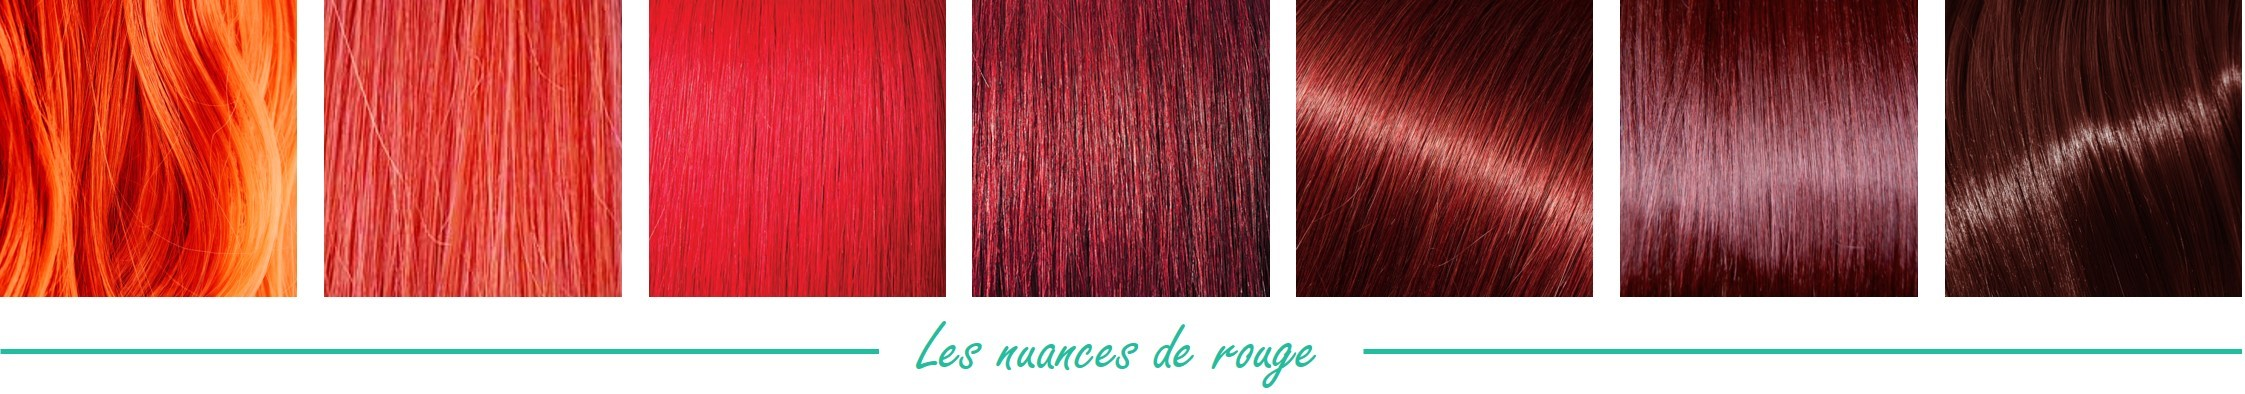 Catalogue de couleur de cheveux laureate